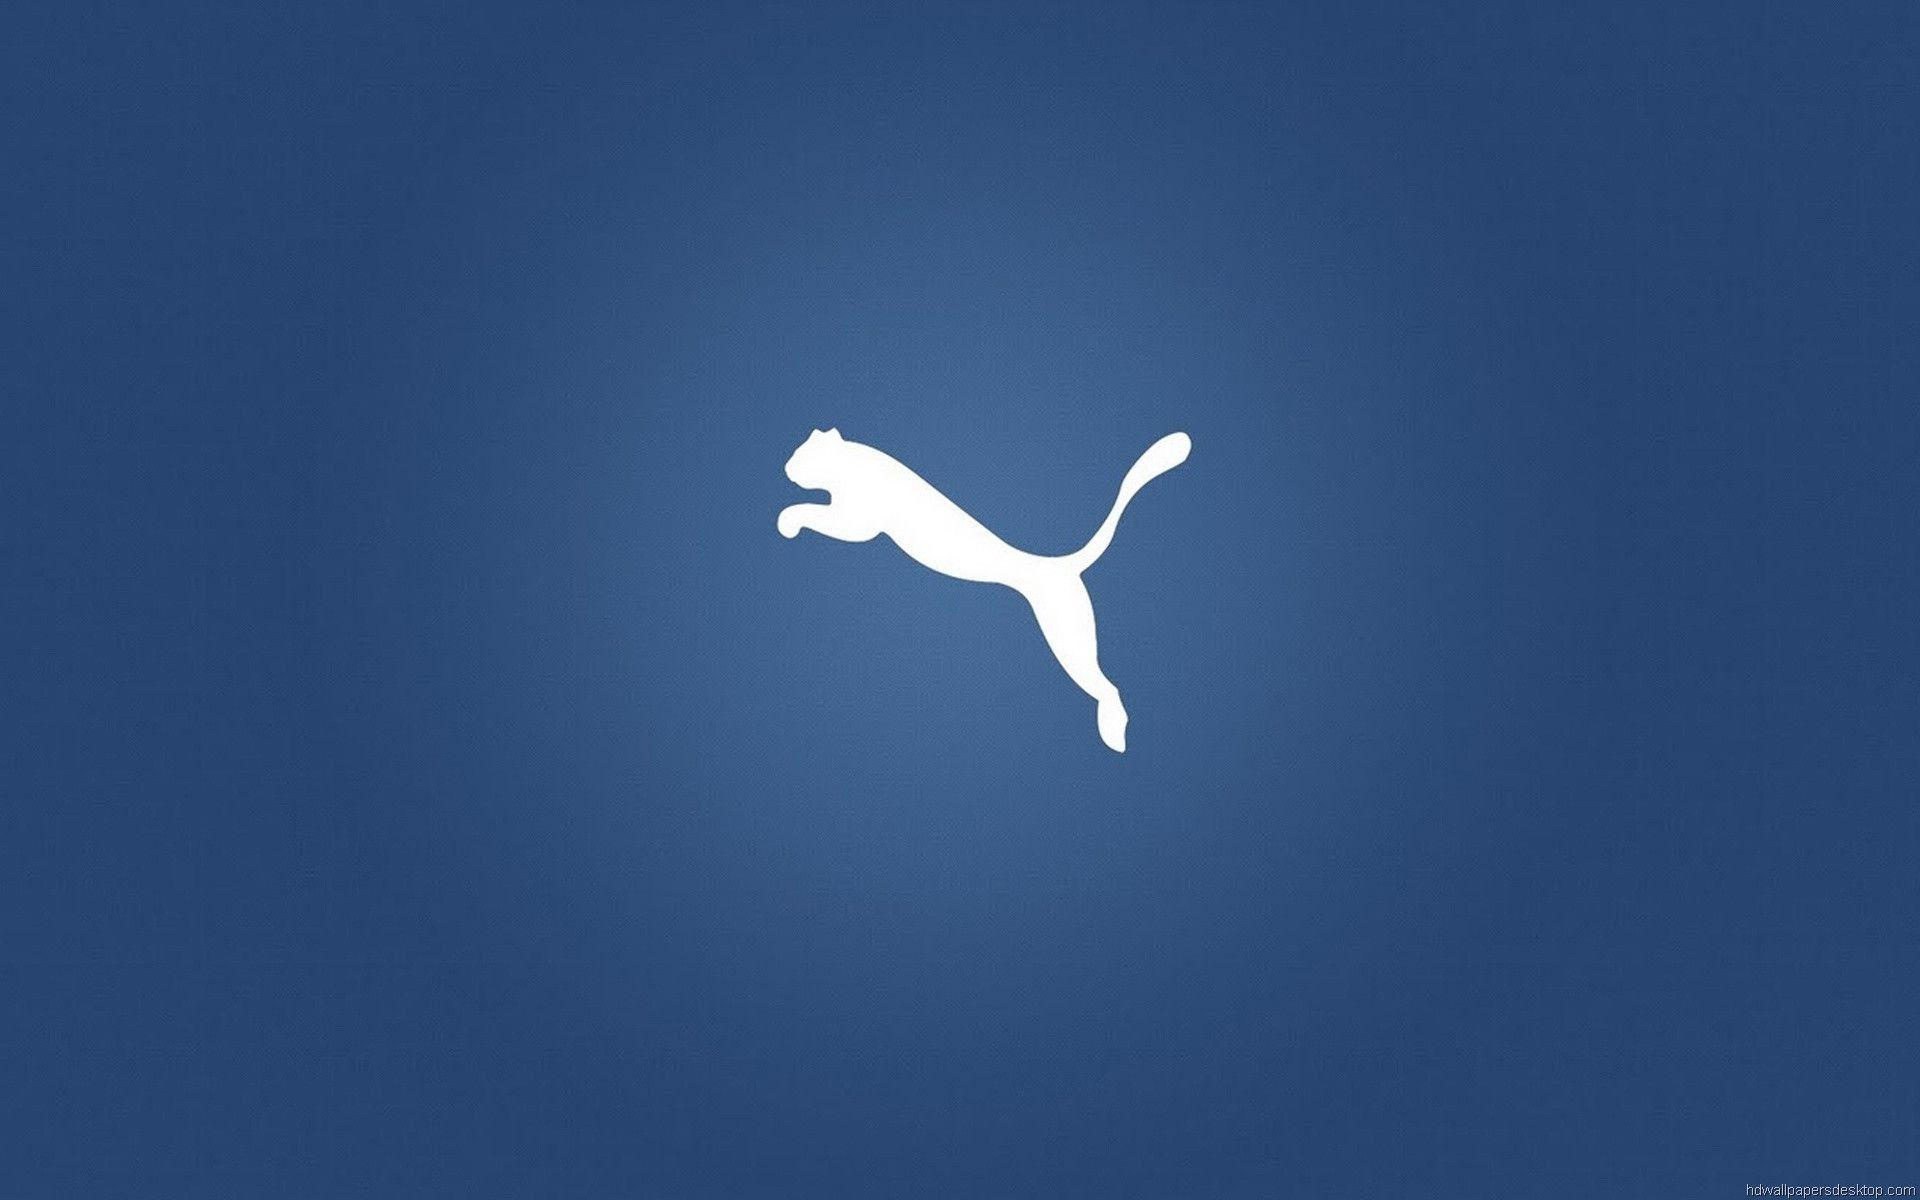 Puma Wallpapers - Full HD wallpaper search